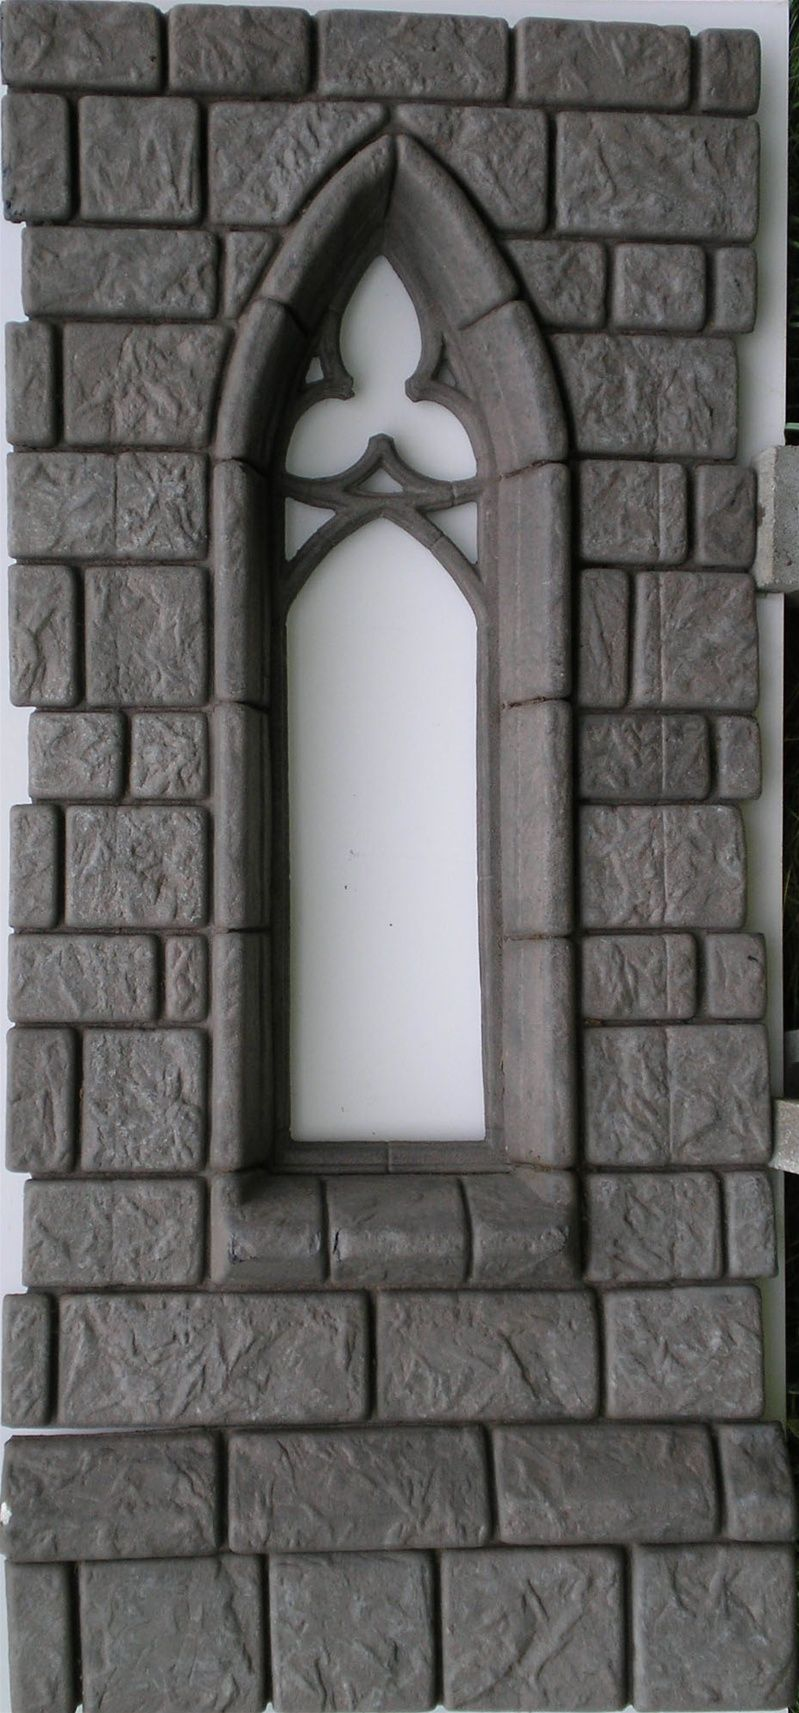 You Can Have A Castle Window Just Like Maleficent With